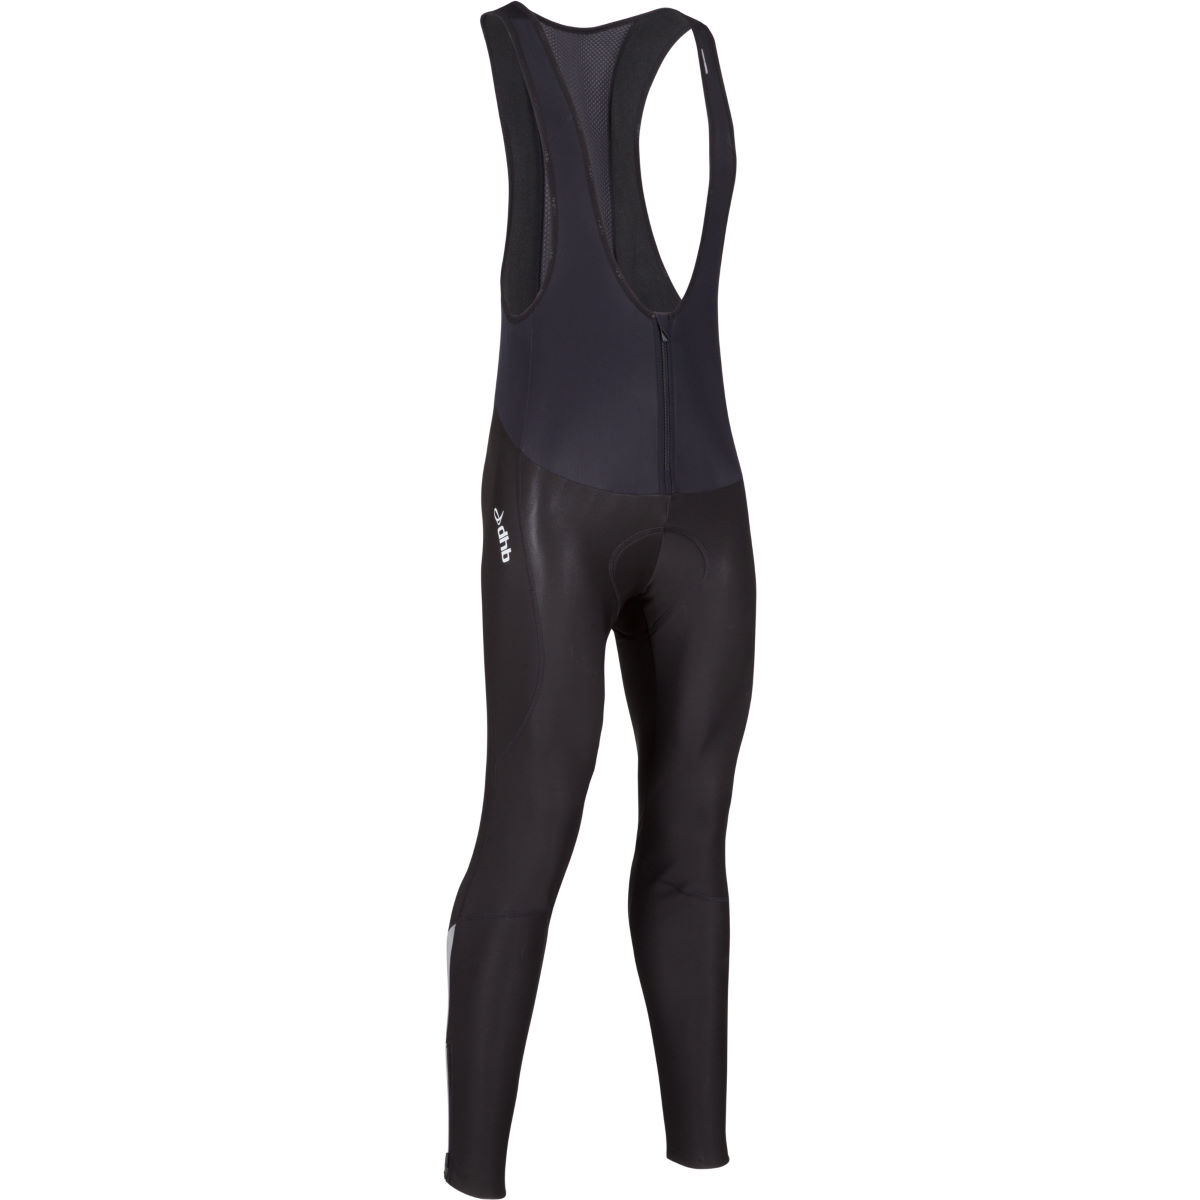 dhb Aeron Deep Winter Bib Tight